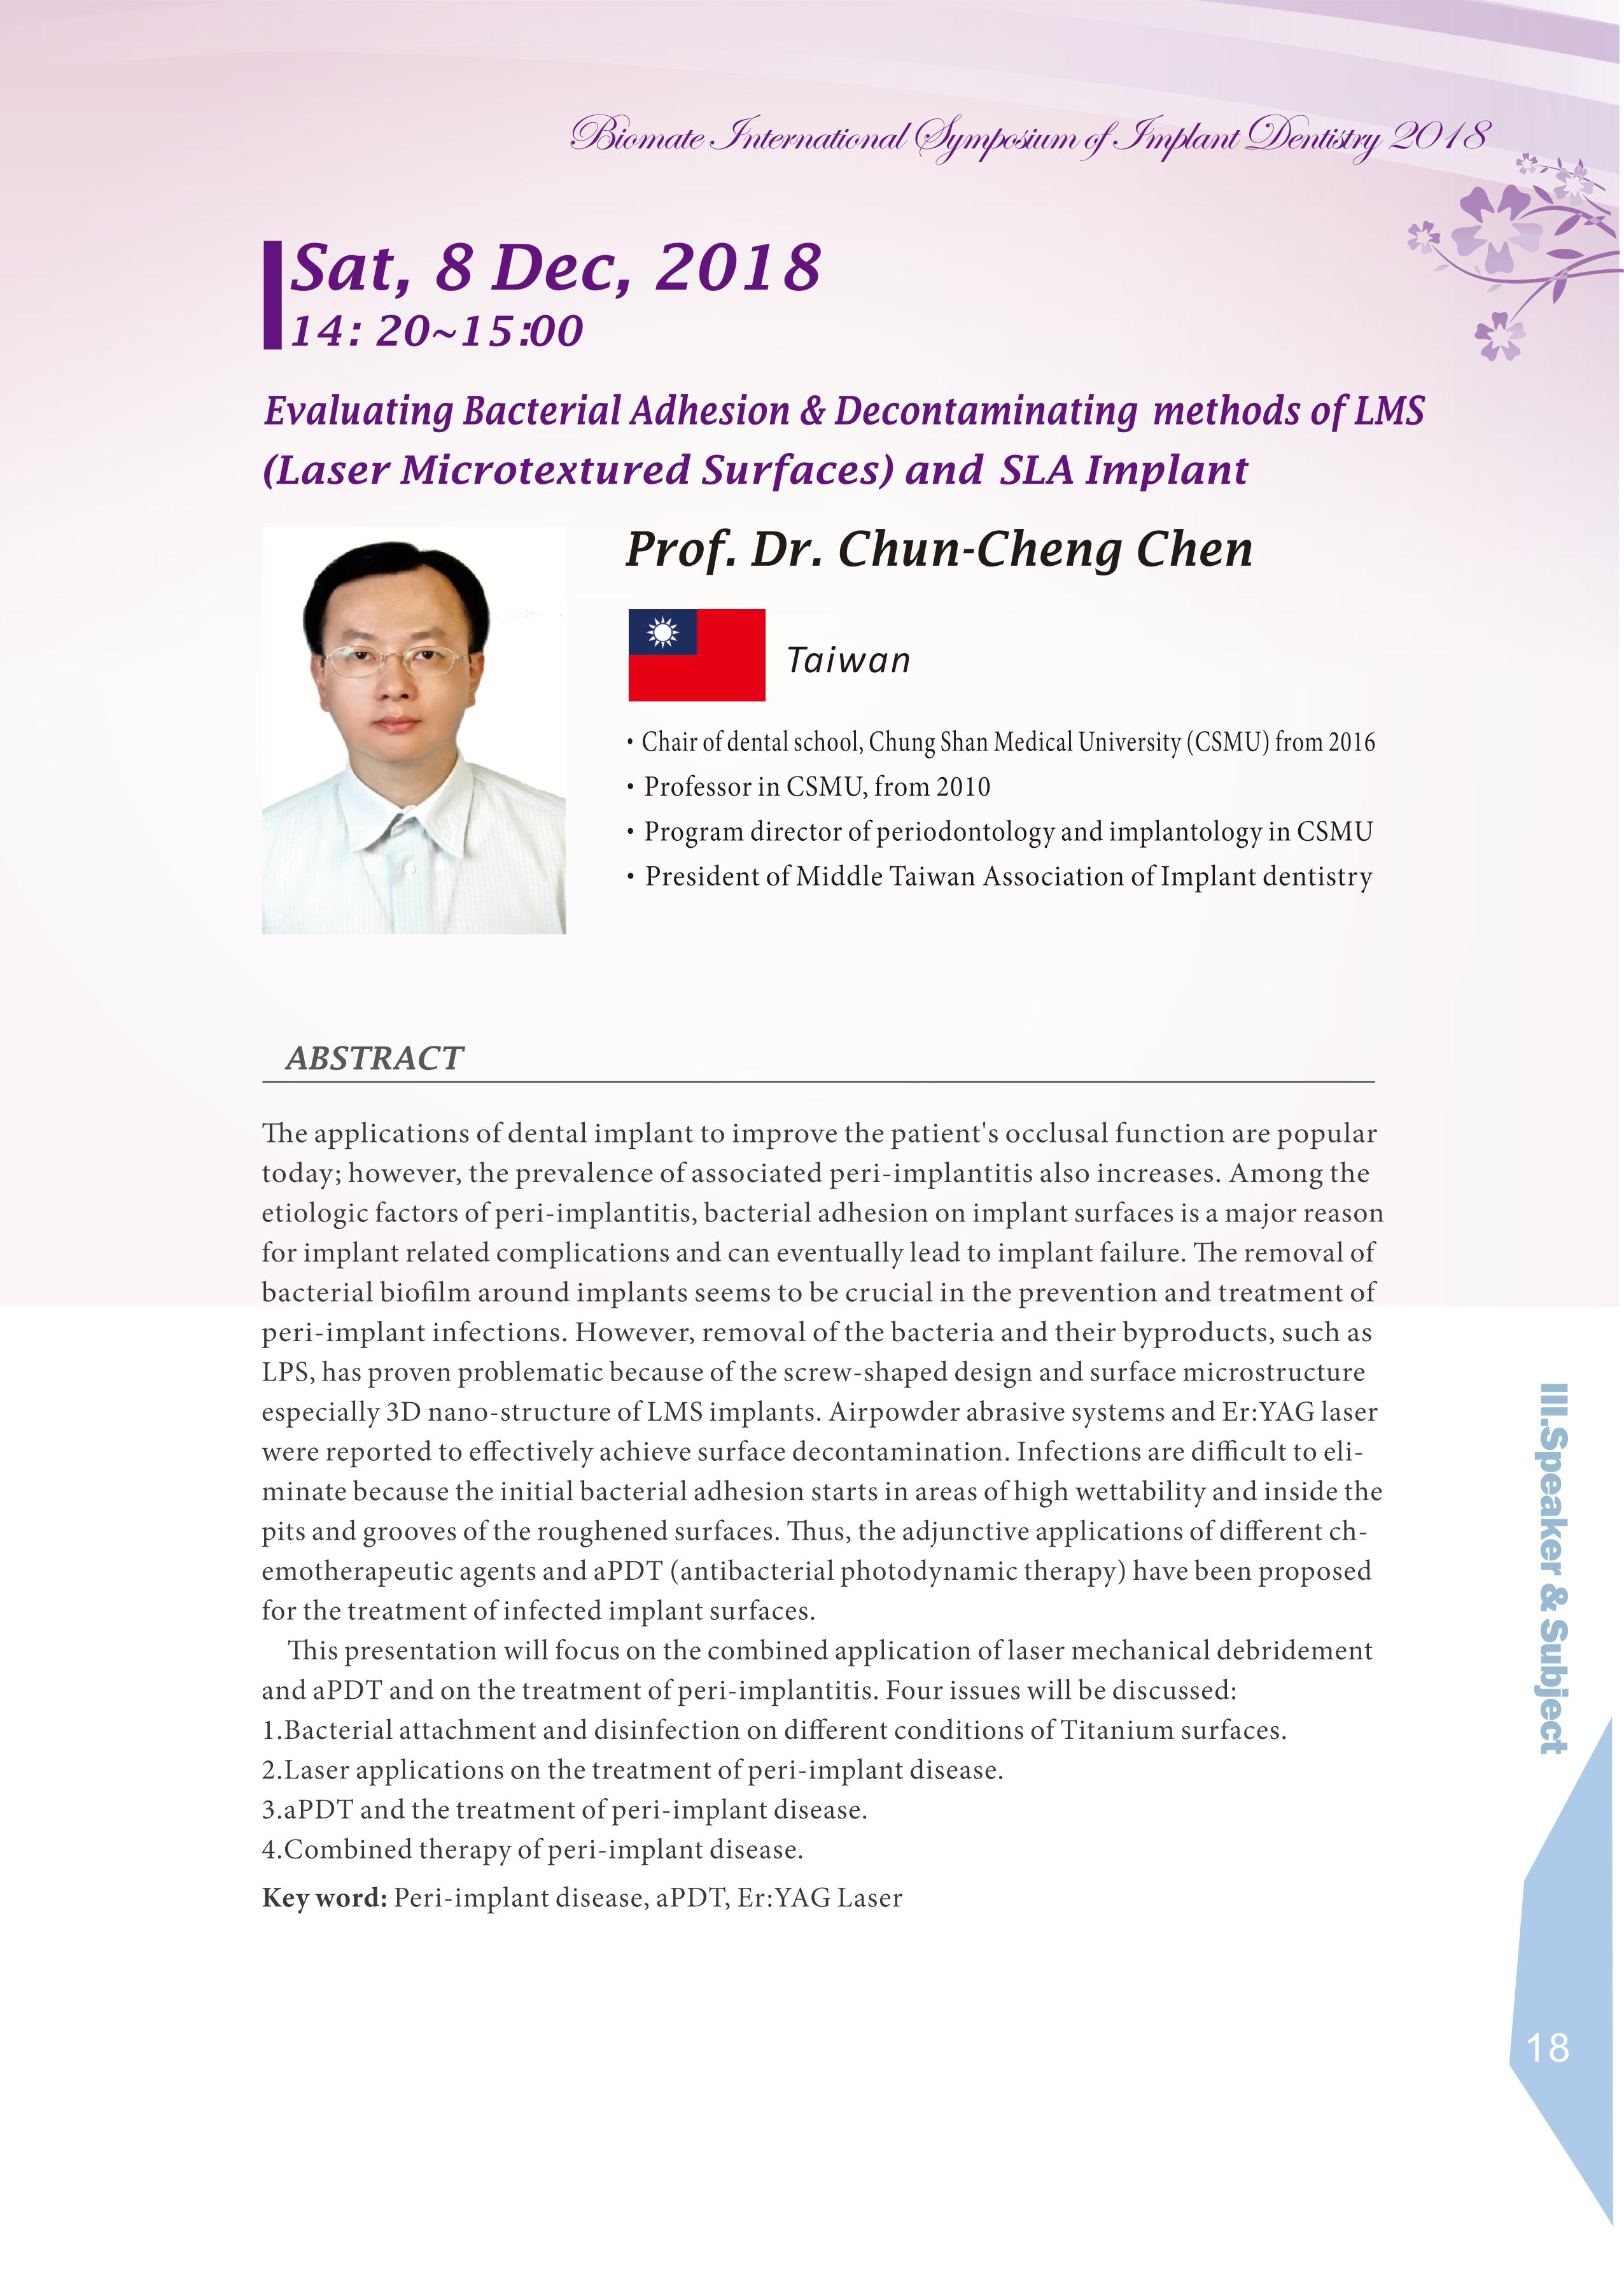 Biomate Internation Symposium of Implant Dentistry-Prof.Dr.Chun-Cheng Chen